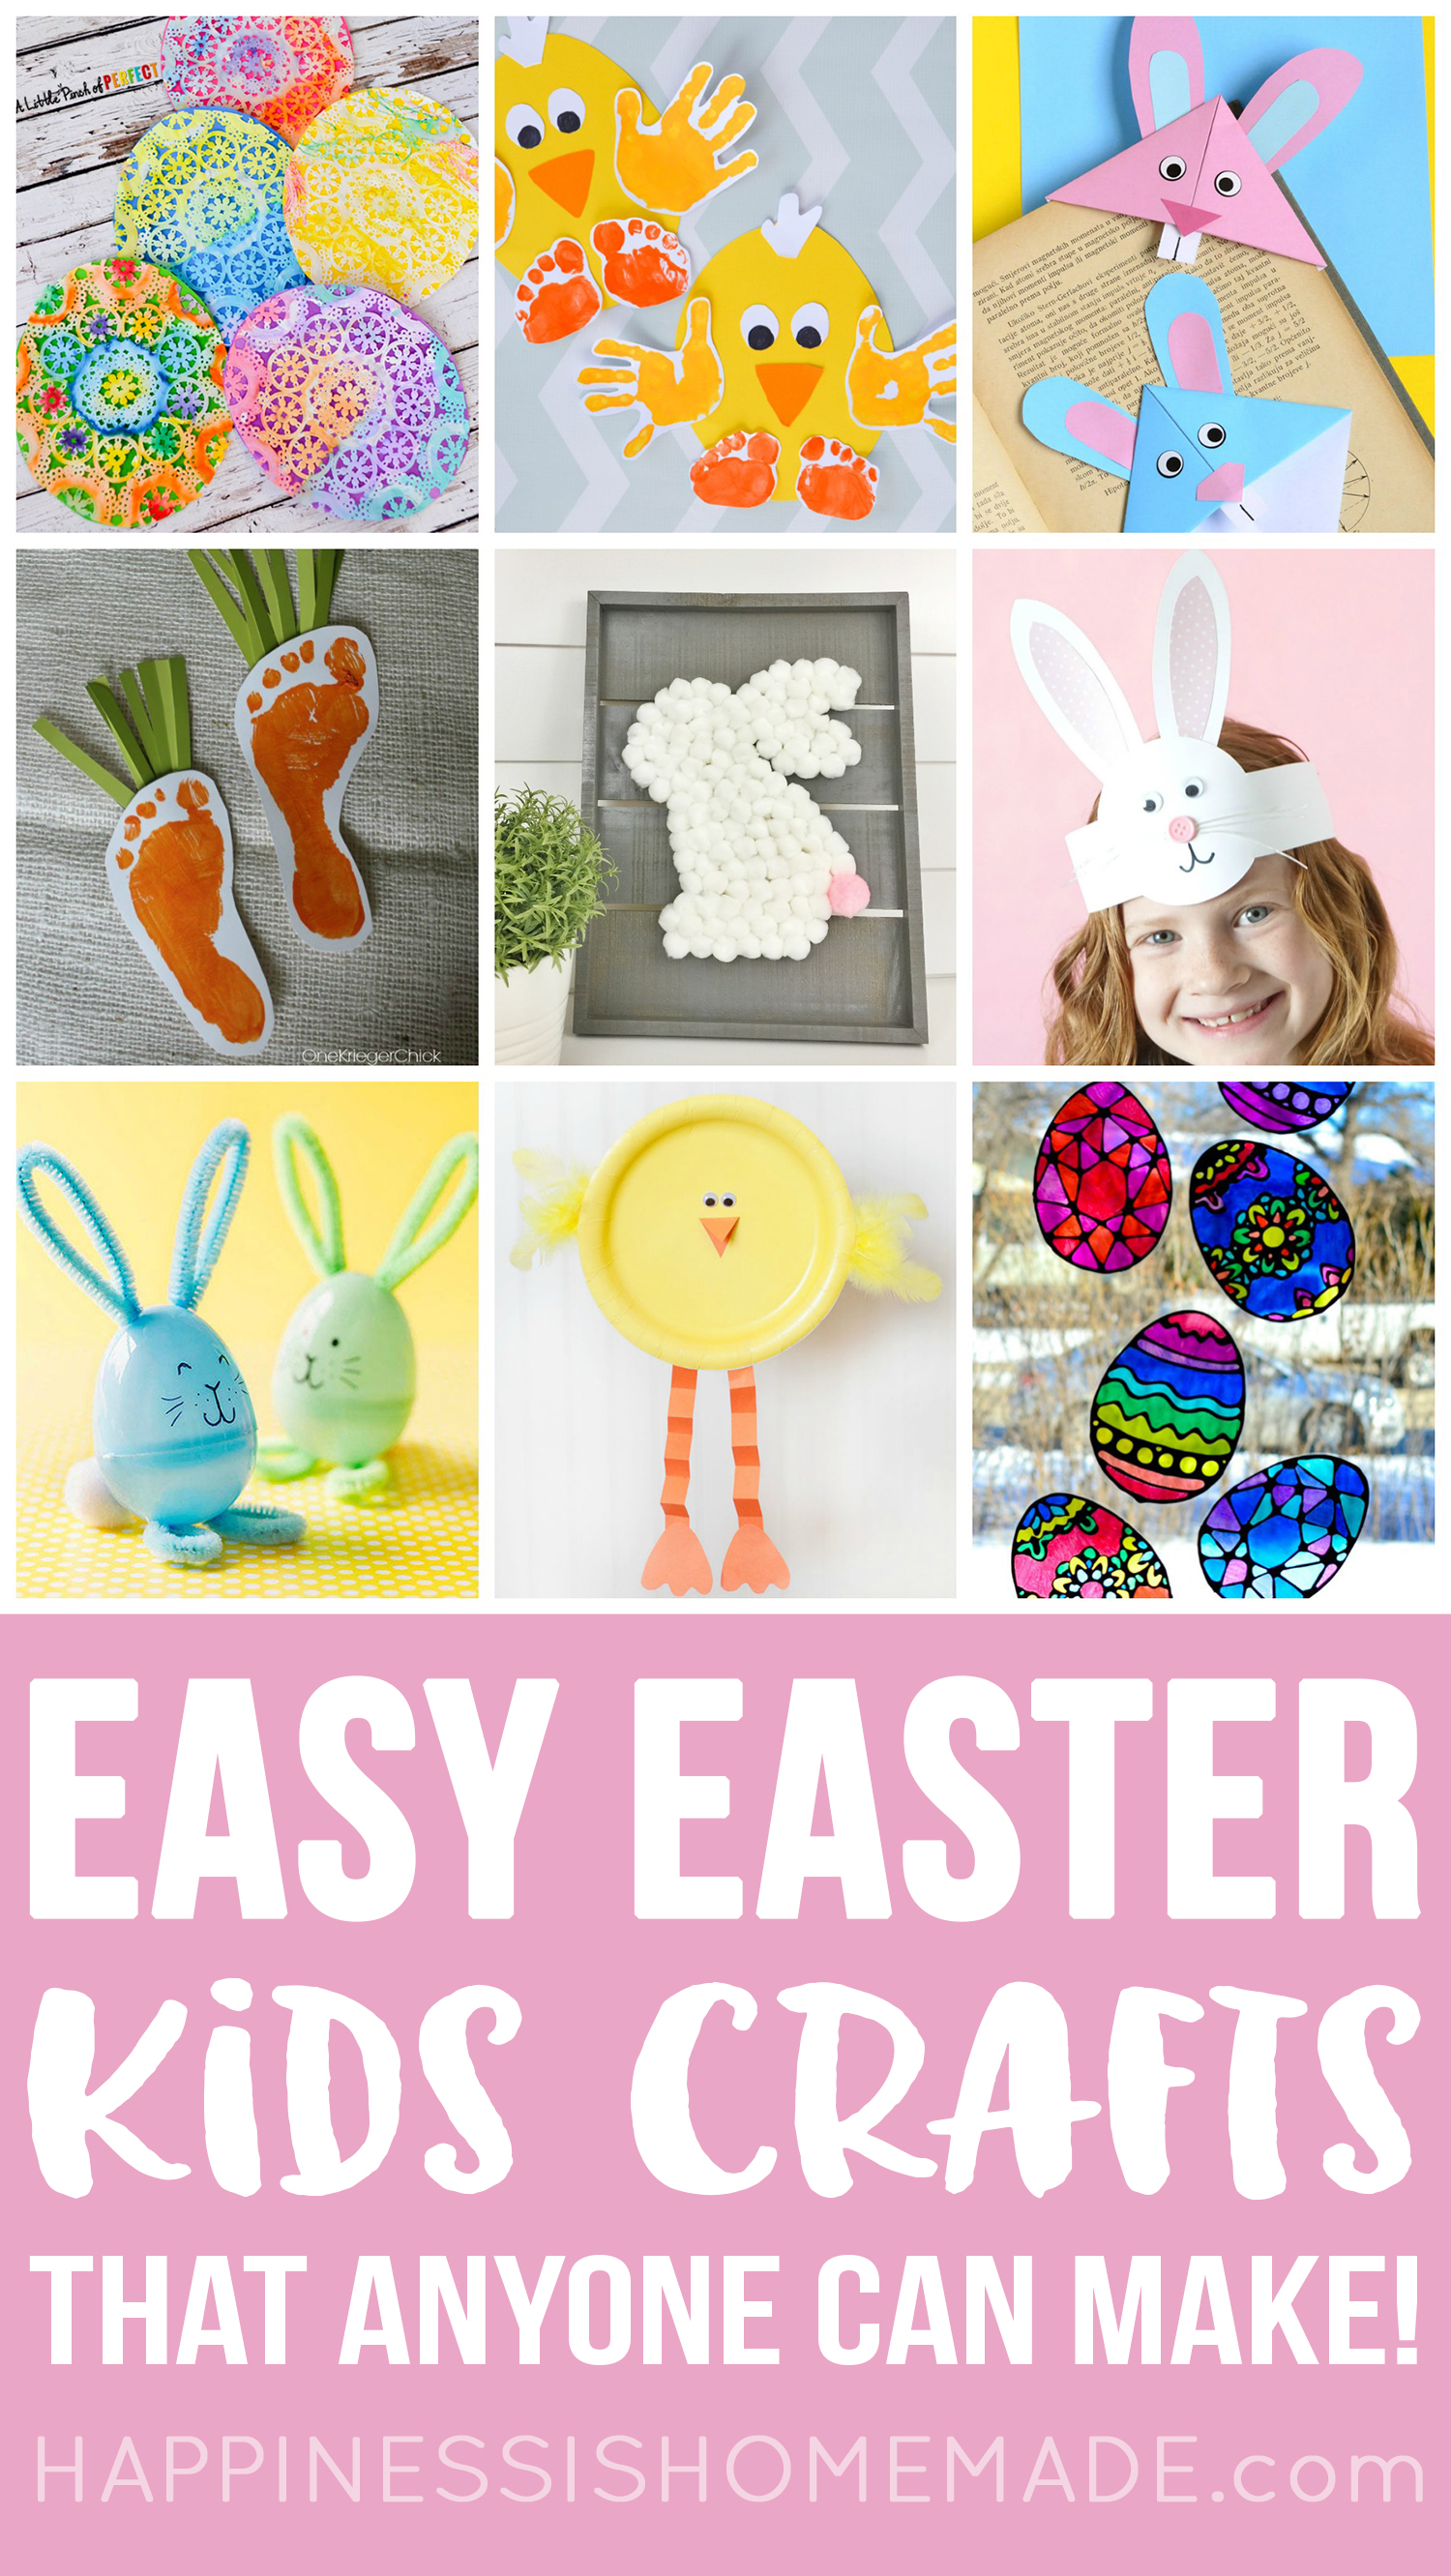 30+ Easy Easter Crafts for Kids - Happiness is Homemade